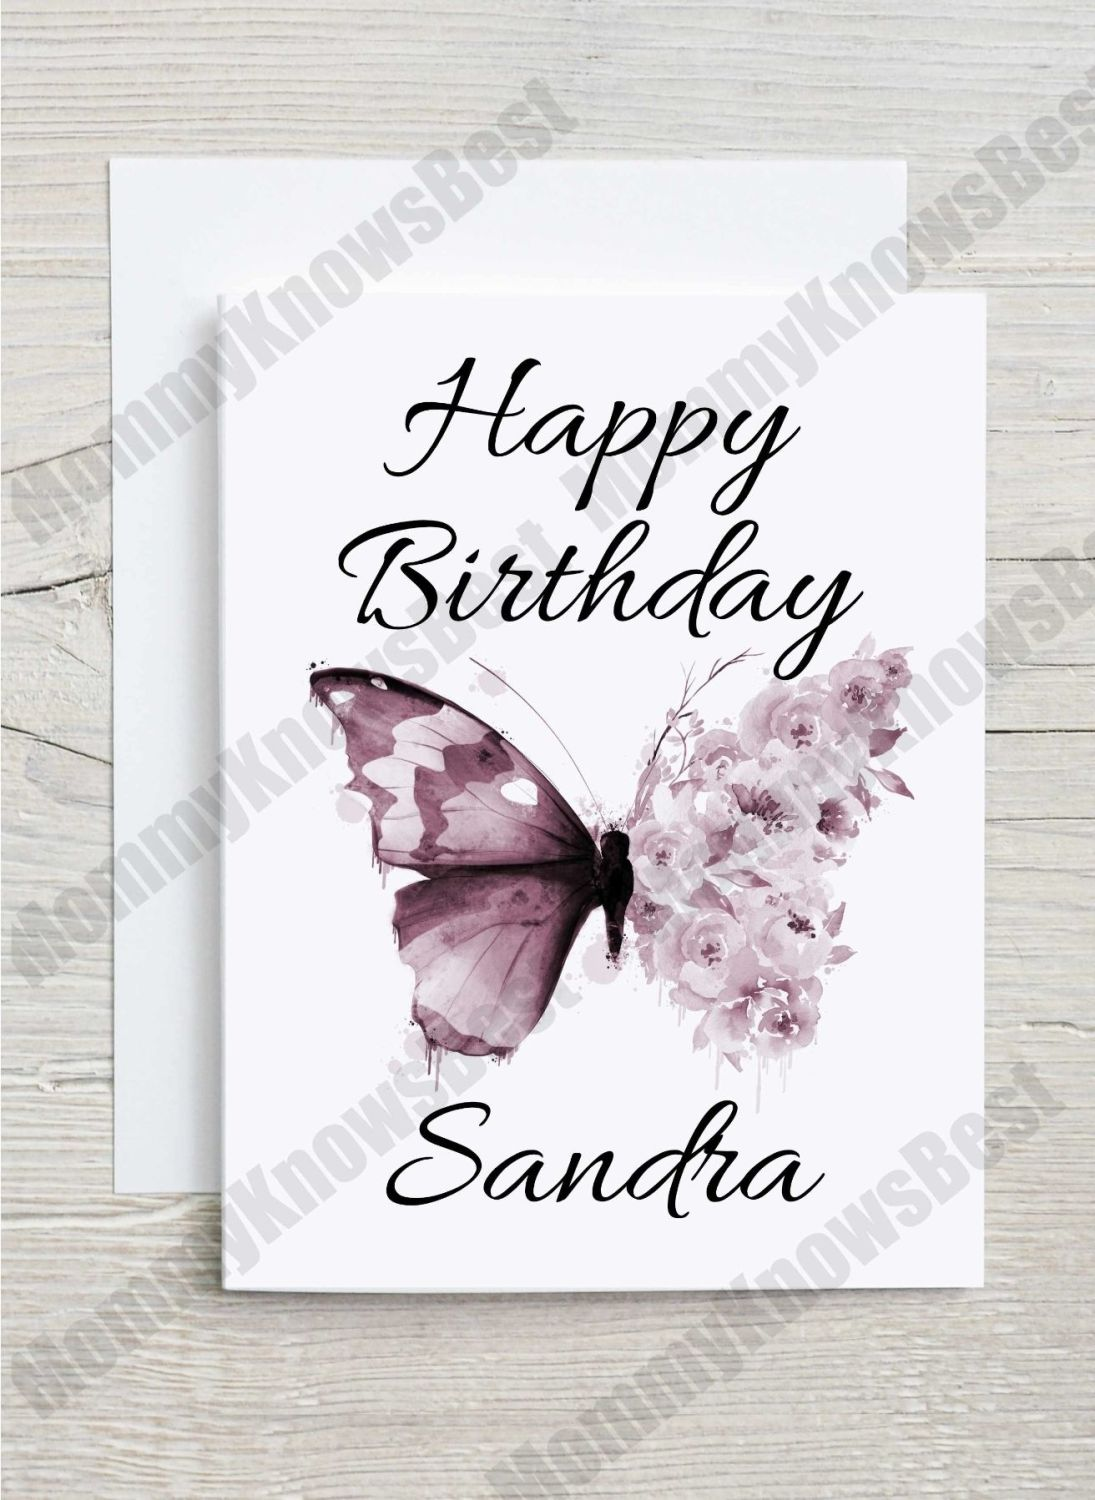 Butterfly greetings card - happy birthday